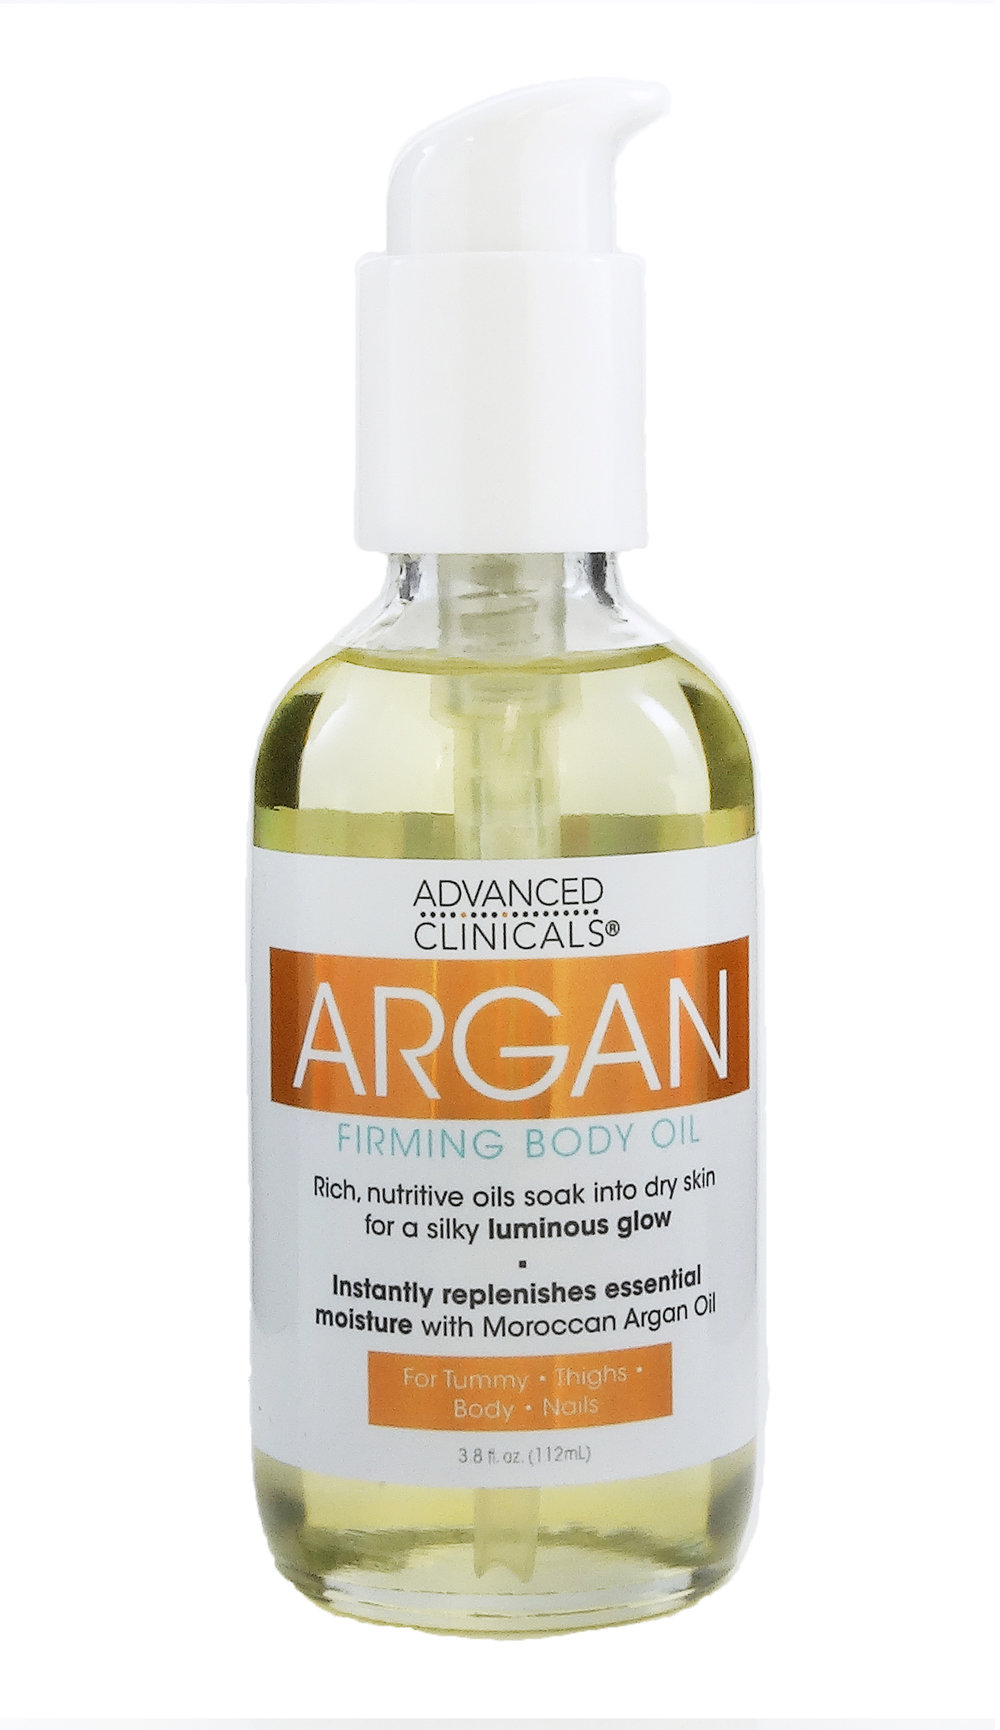 Argan Firming Body Oil